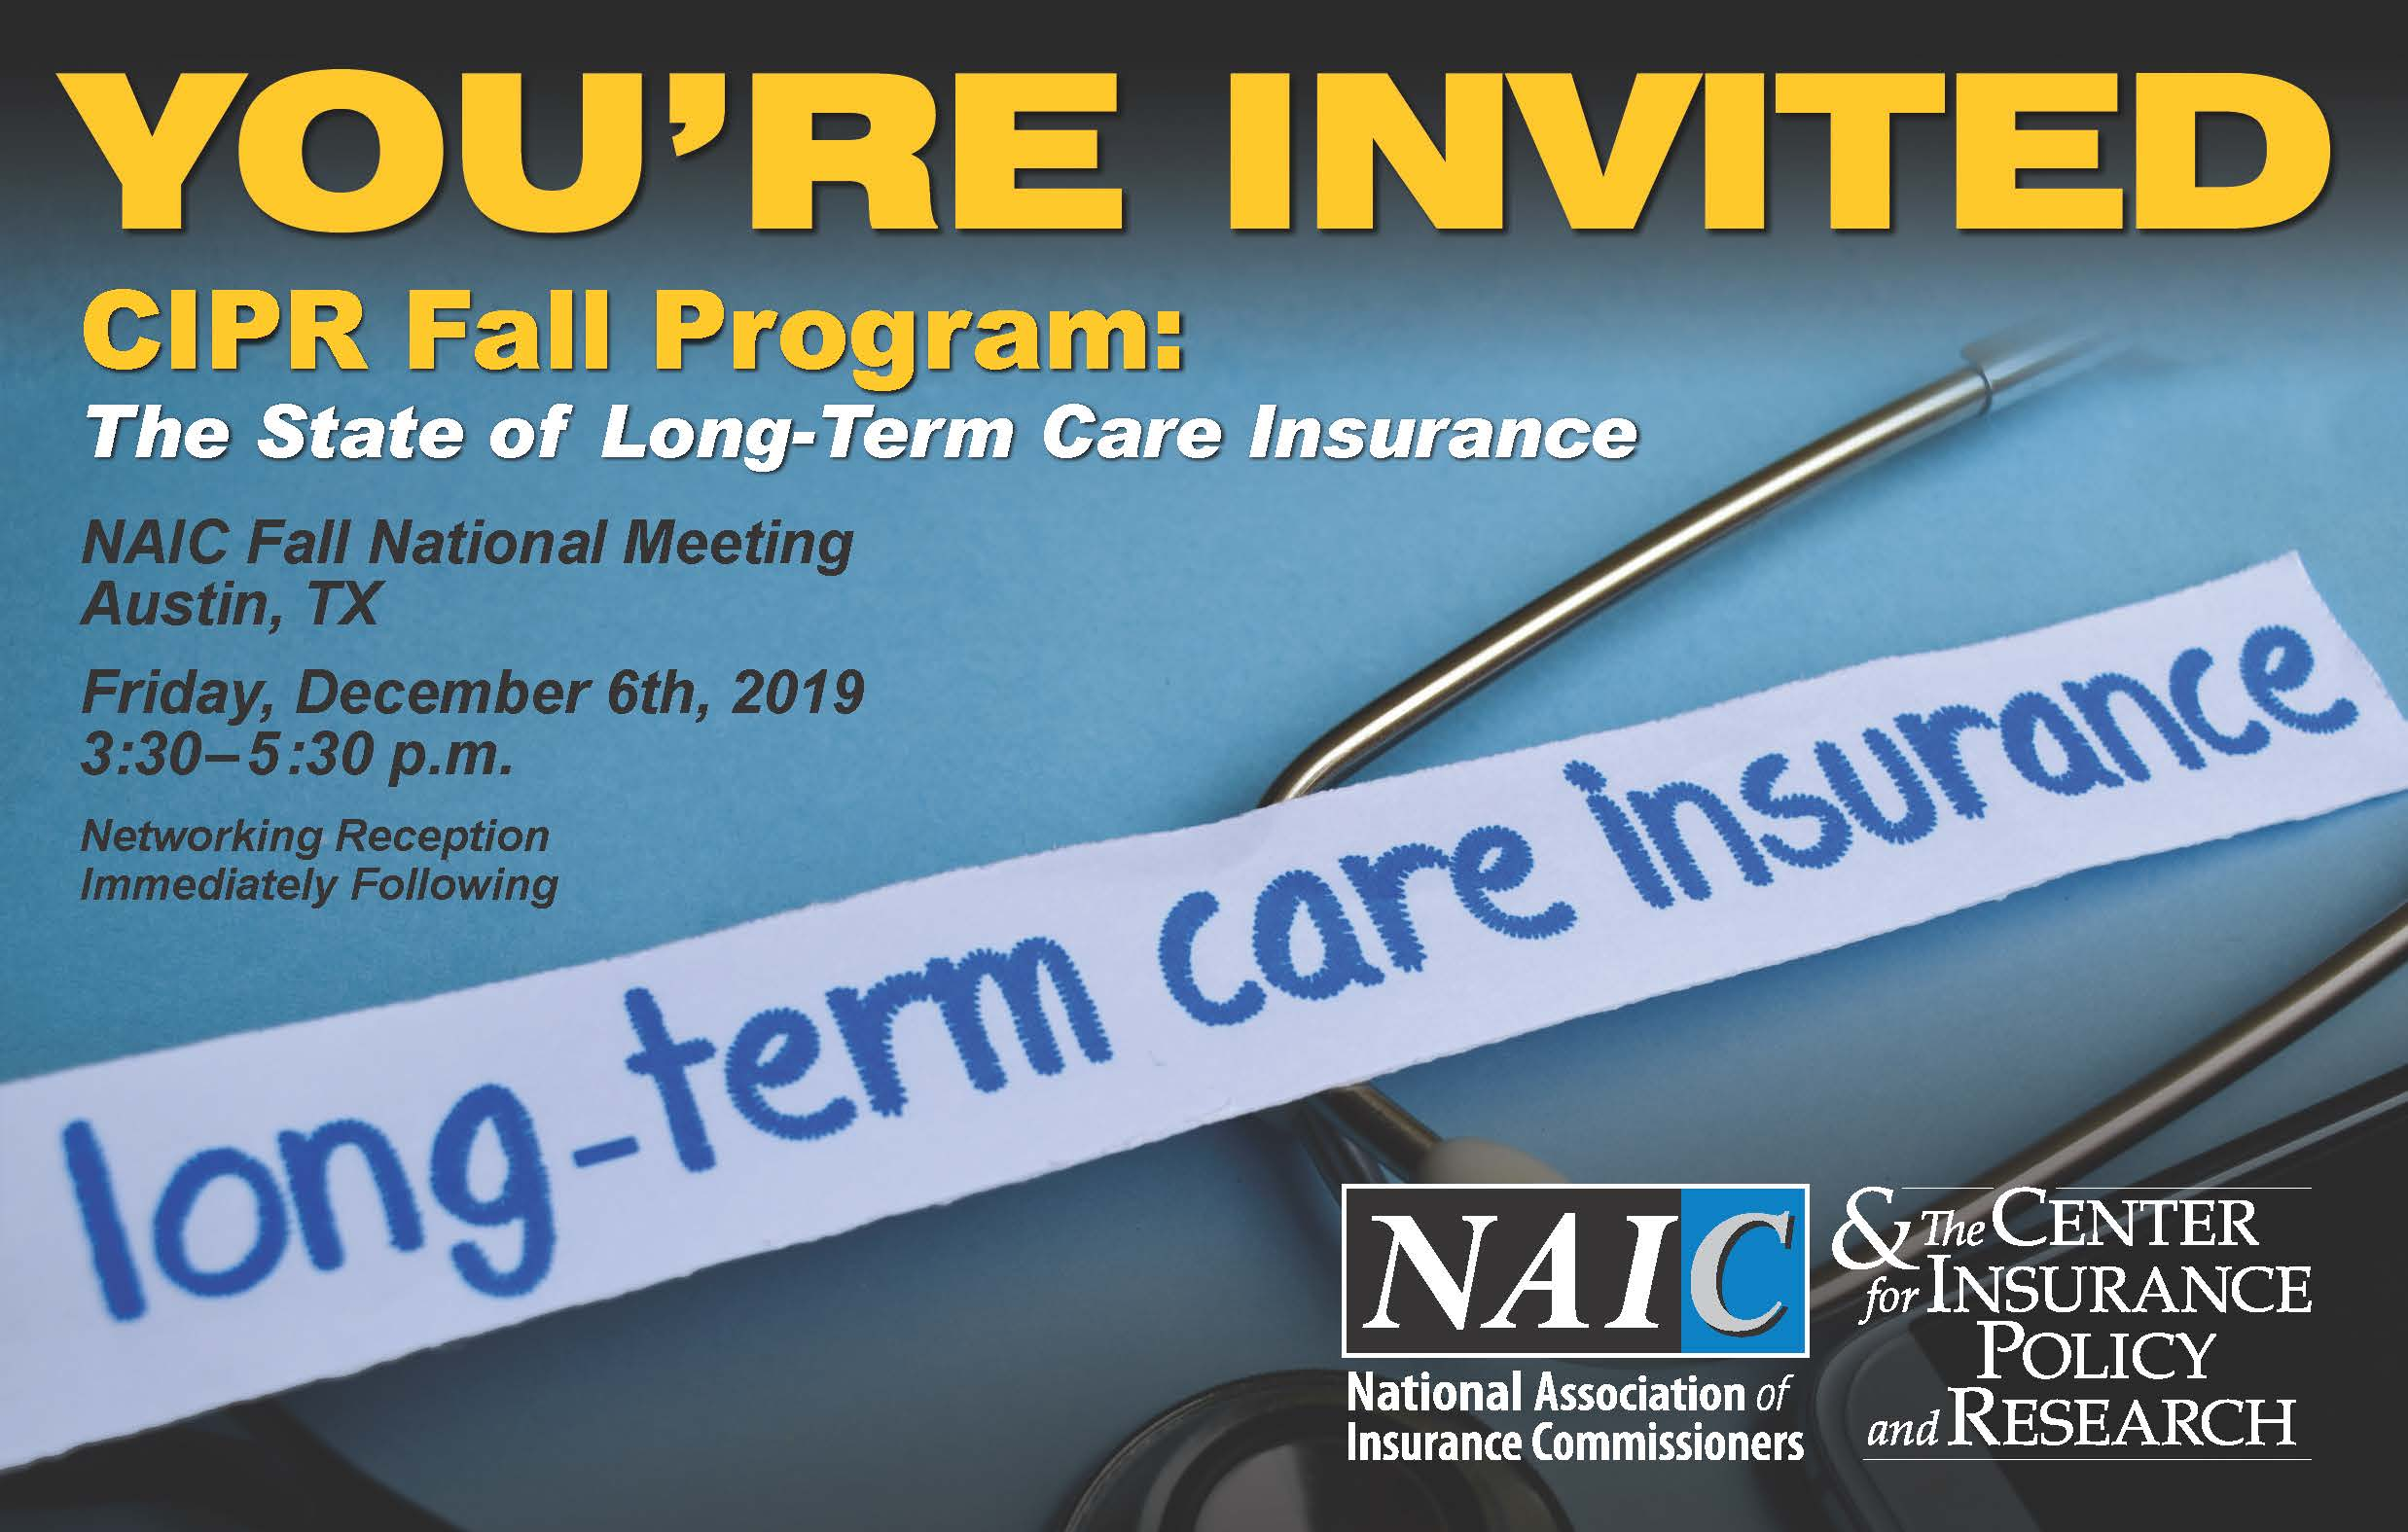 2019_CIPR_Long-Term Care Insurance_You're Invited